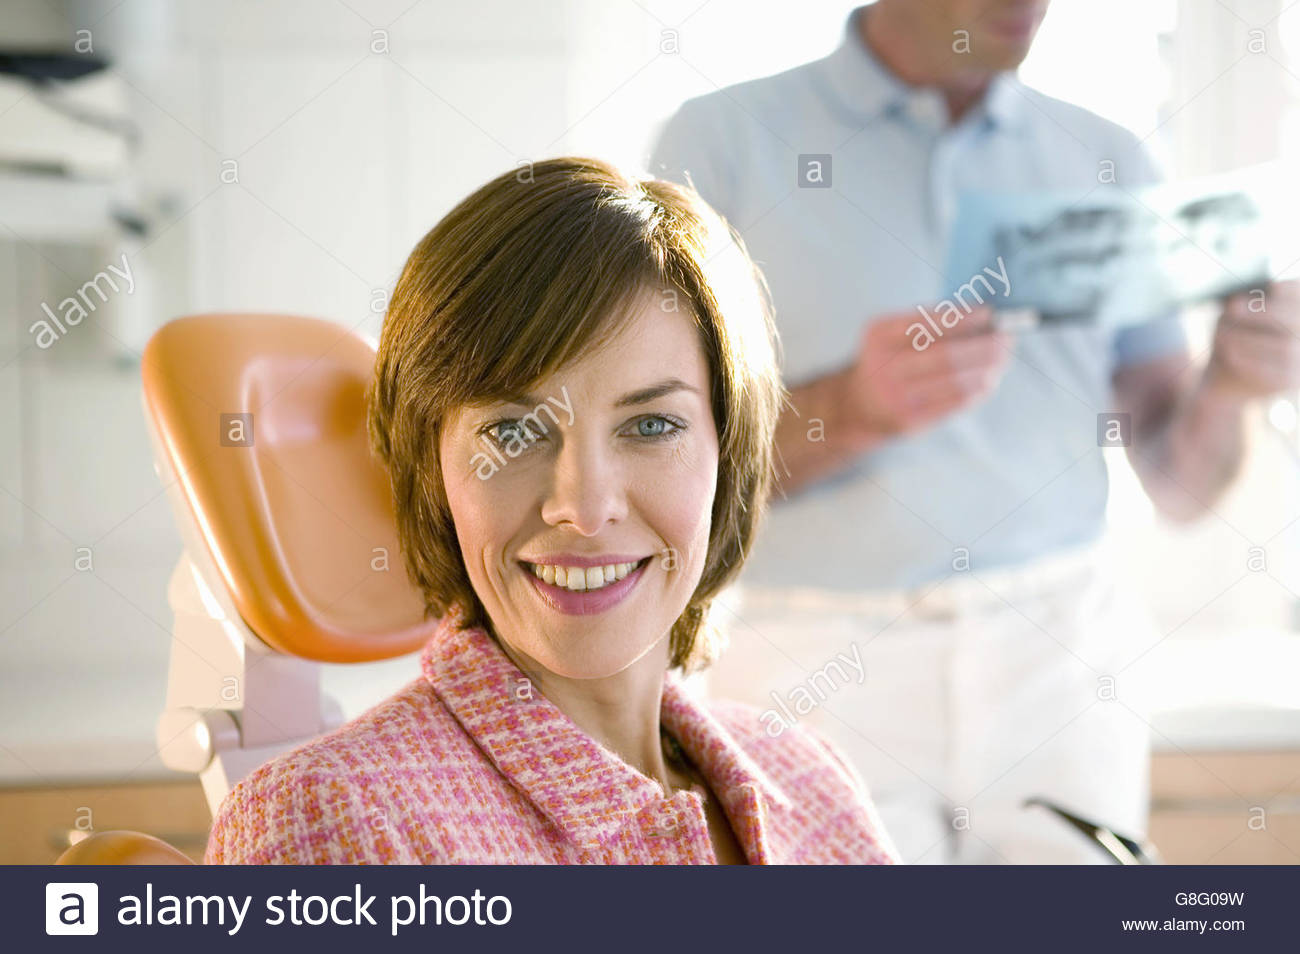 Woman smiling in dentists chair - Stock Image